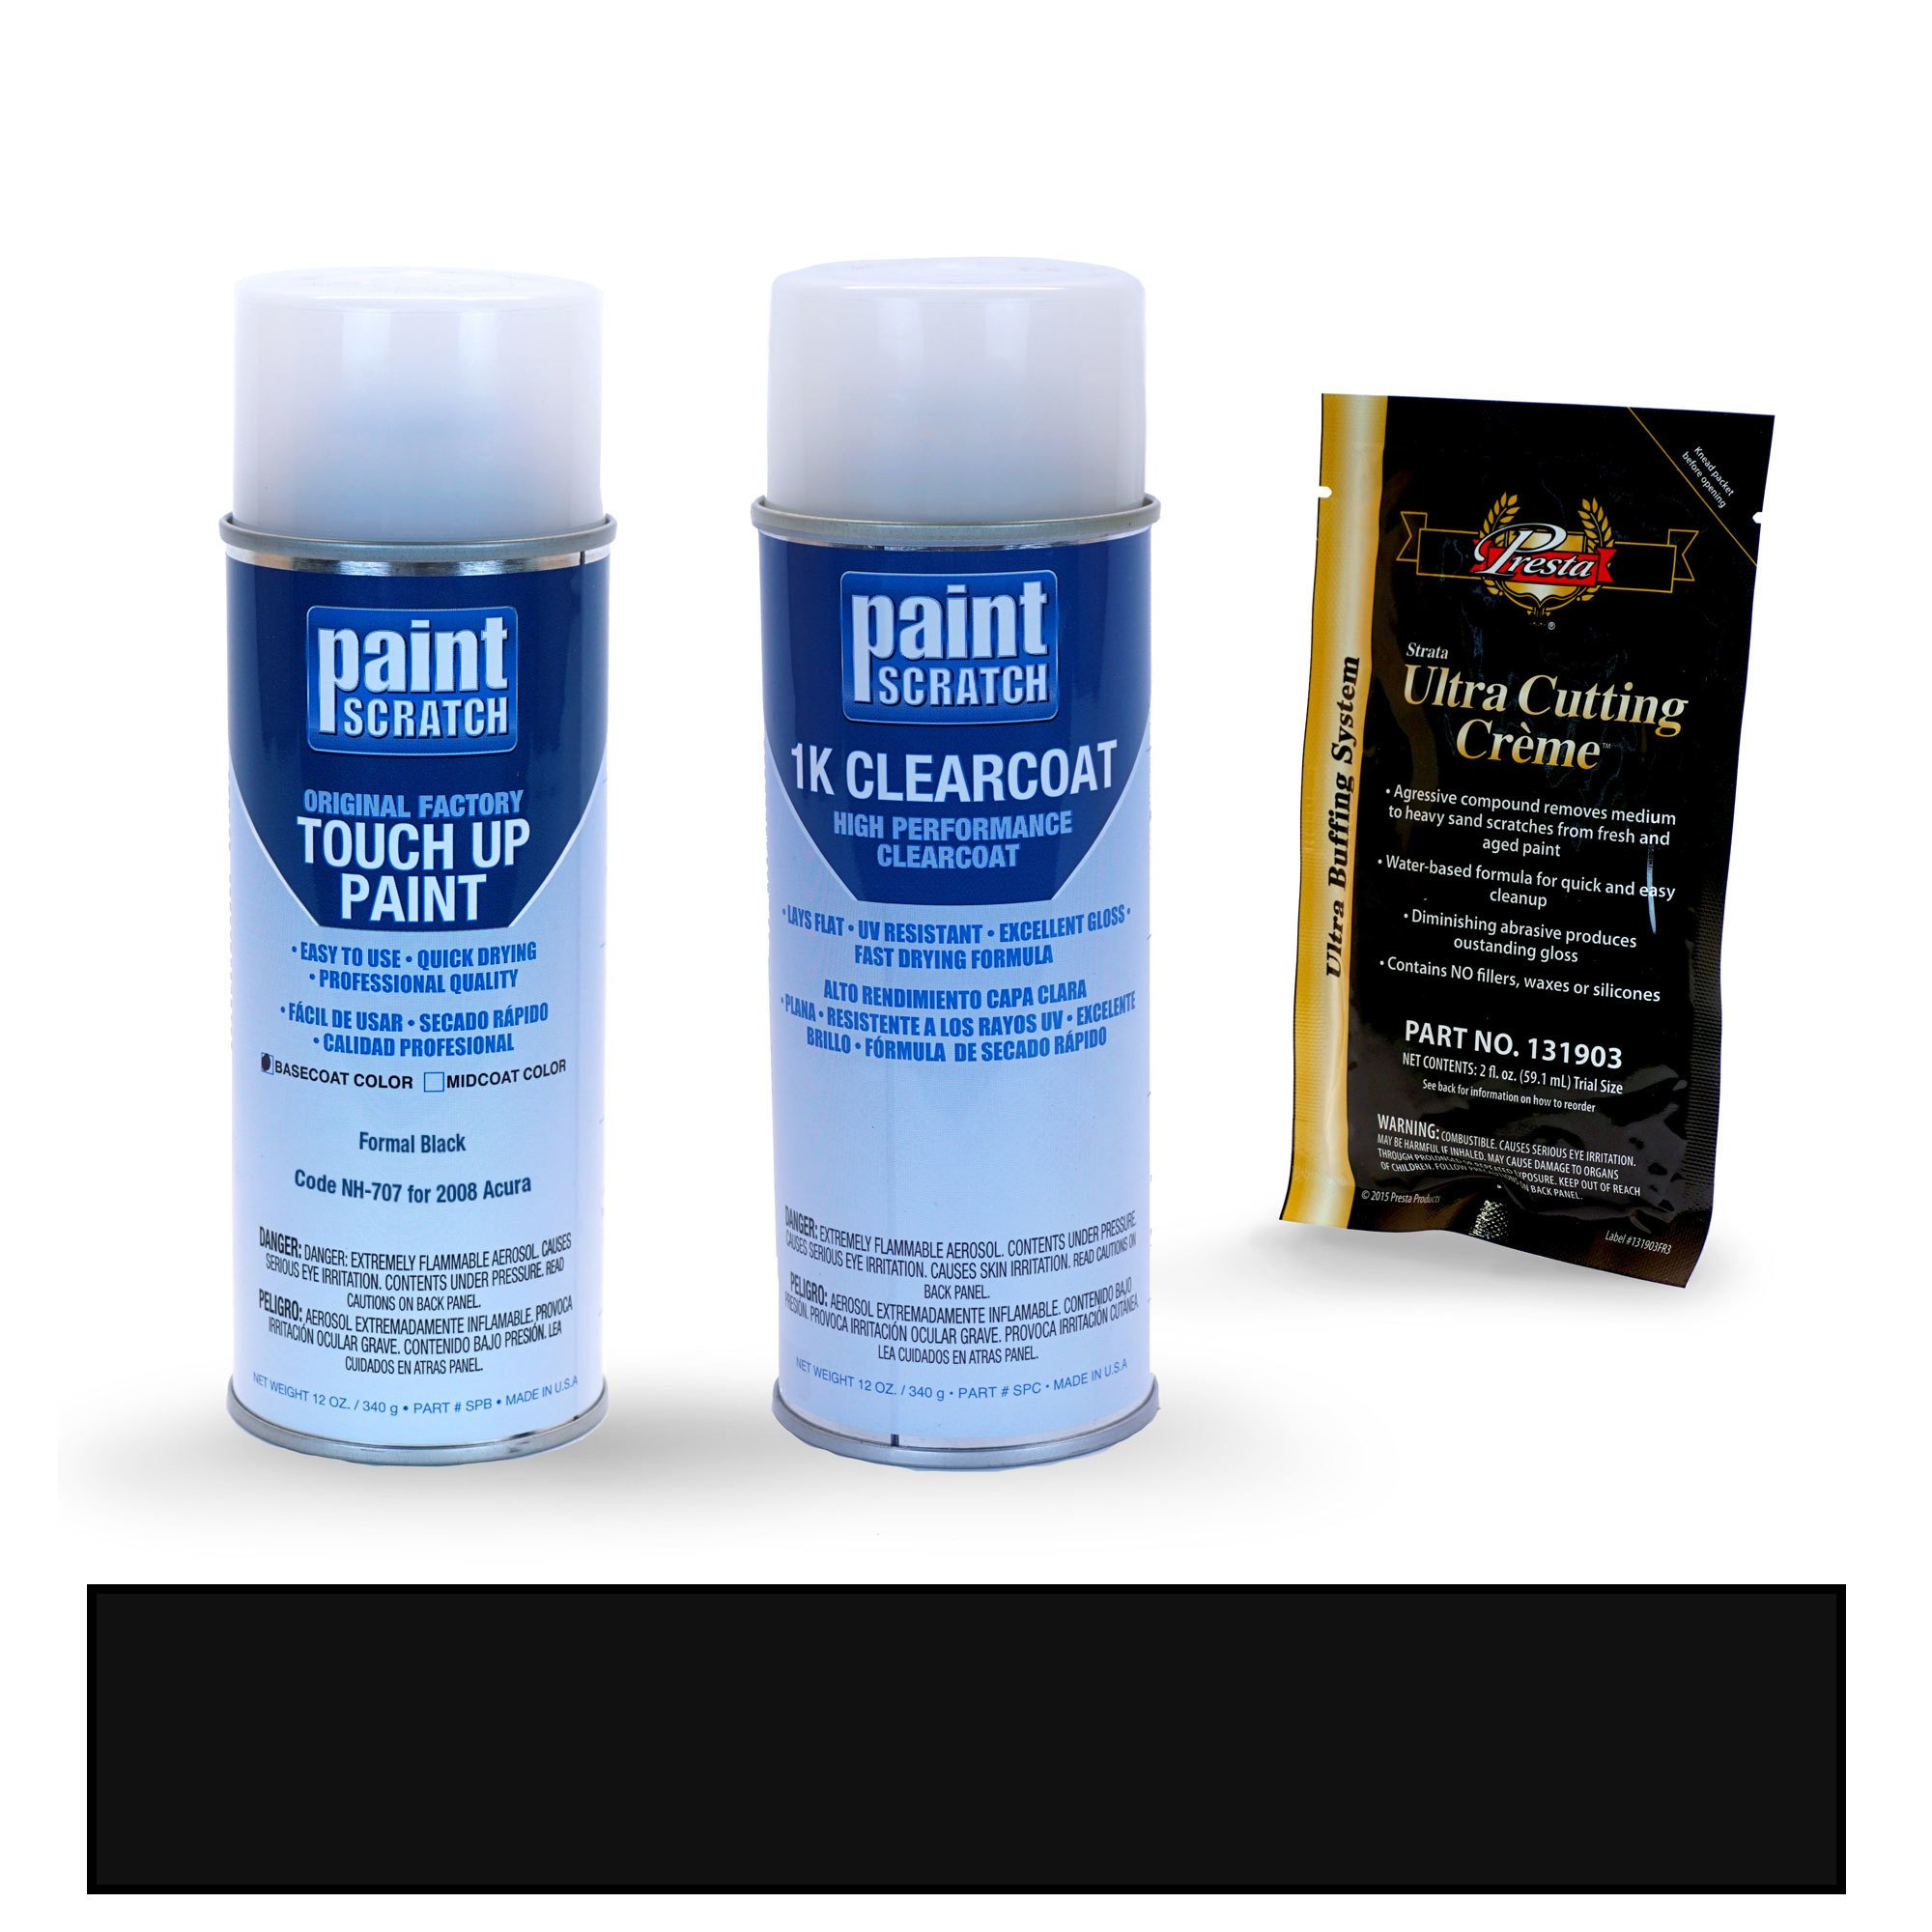 PAINTSCRATCH Formal Black NH-707 for 2008 Acura MDX - Touch Up Paint Spray Can Kit - Original Factory OEM Automotive Paint - Color Match Guaranteed by PAINTSCRATCH